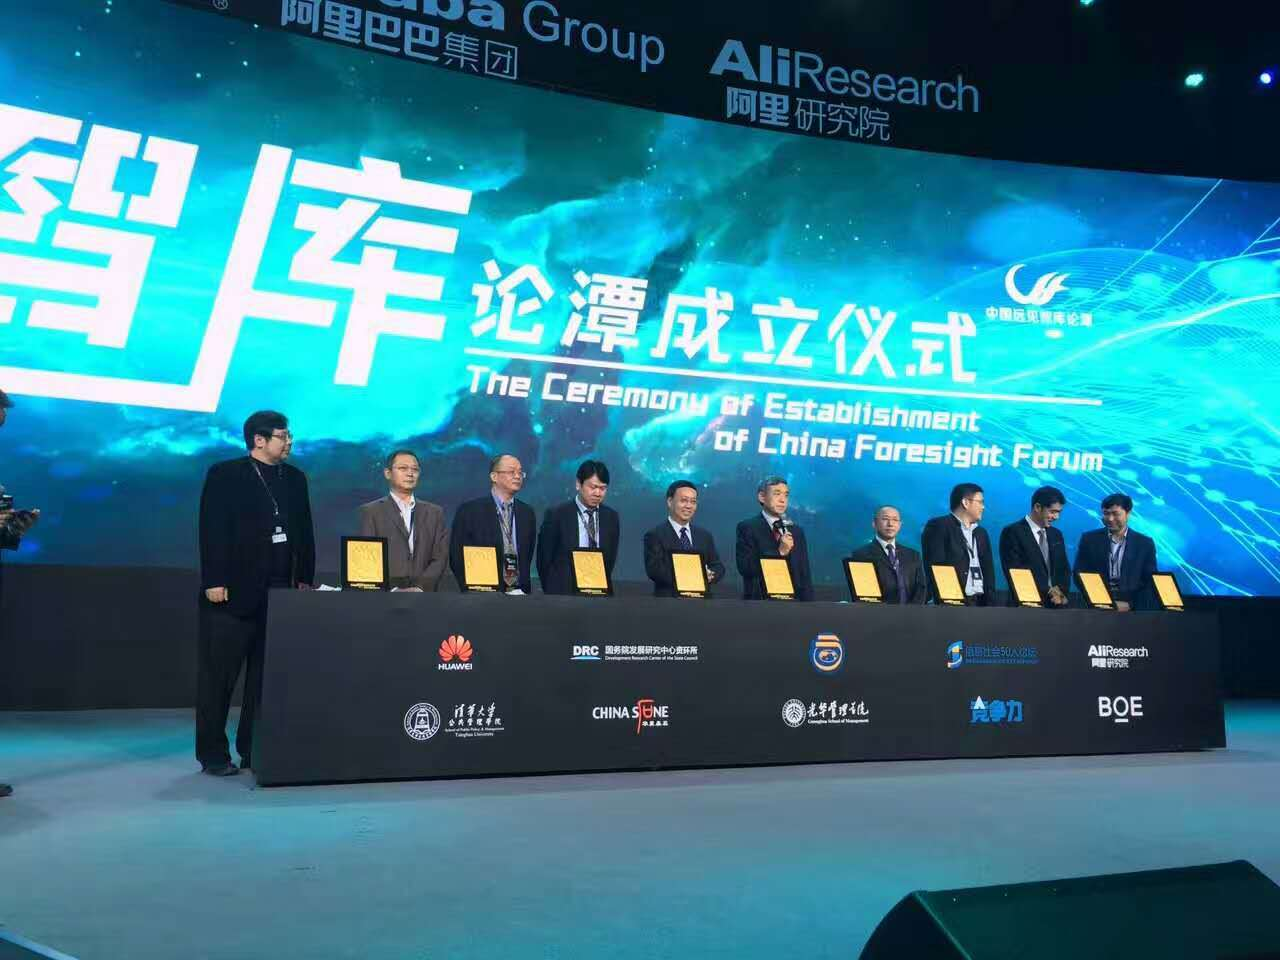 Establishment ceremony of China Foresight Forum held in Beijing